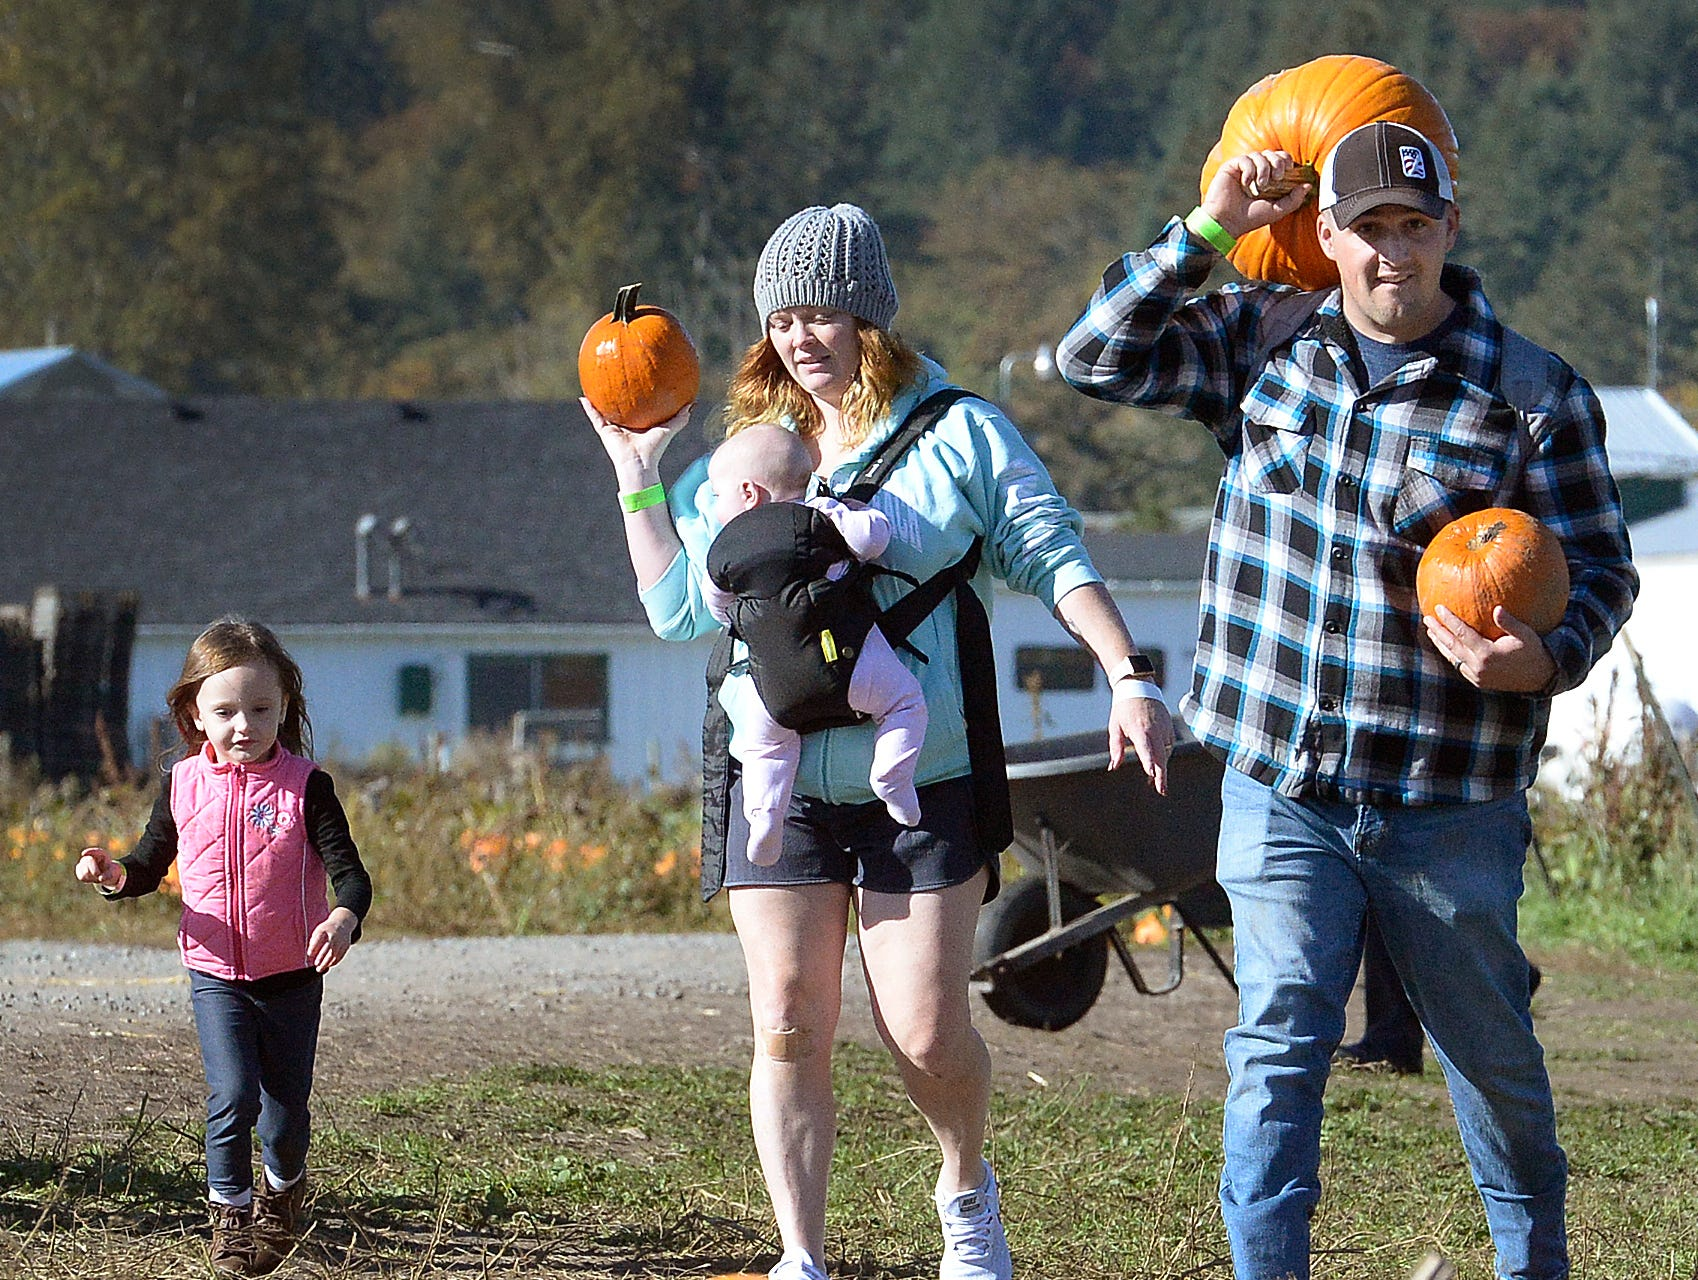 Making the short jaunt from nearby Joint Base Lewis-McChord to the Schilter Family Farm in Nisqually, Wash. on Sunday, Oct 14, 2018 US Army Sgt. Zach Holt and his wife Constance find a nice selection of future jack-o-lanterns fort heir daughters Paisleigh,3, and Charlotte, 4 months, as summer-like weather attracted throngs of pickers to local pumpkin patches.  (Steve Bloom/The Olympian via AP) ORG XMIT: WAOLY101